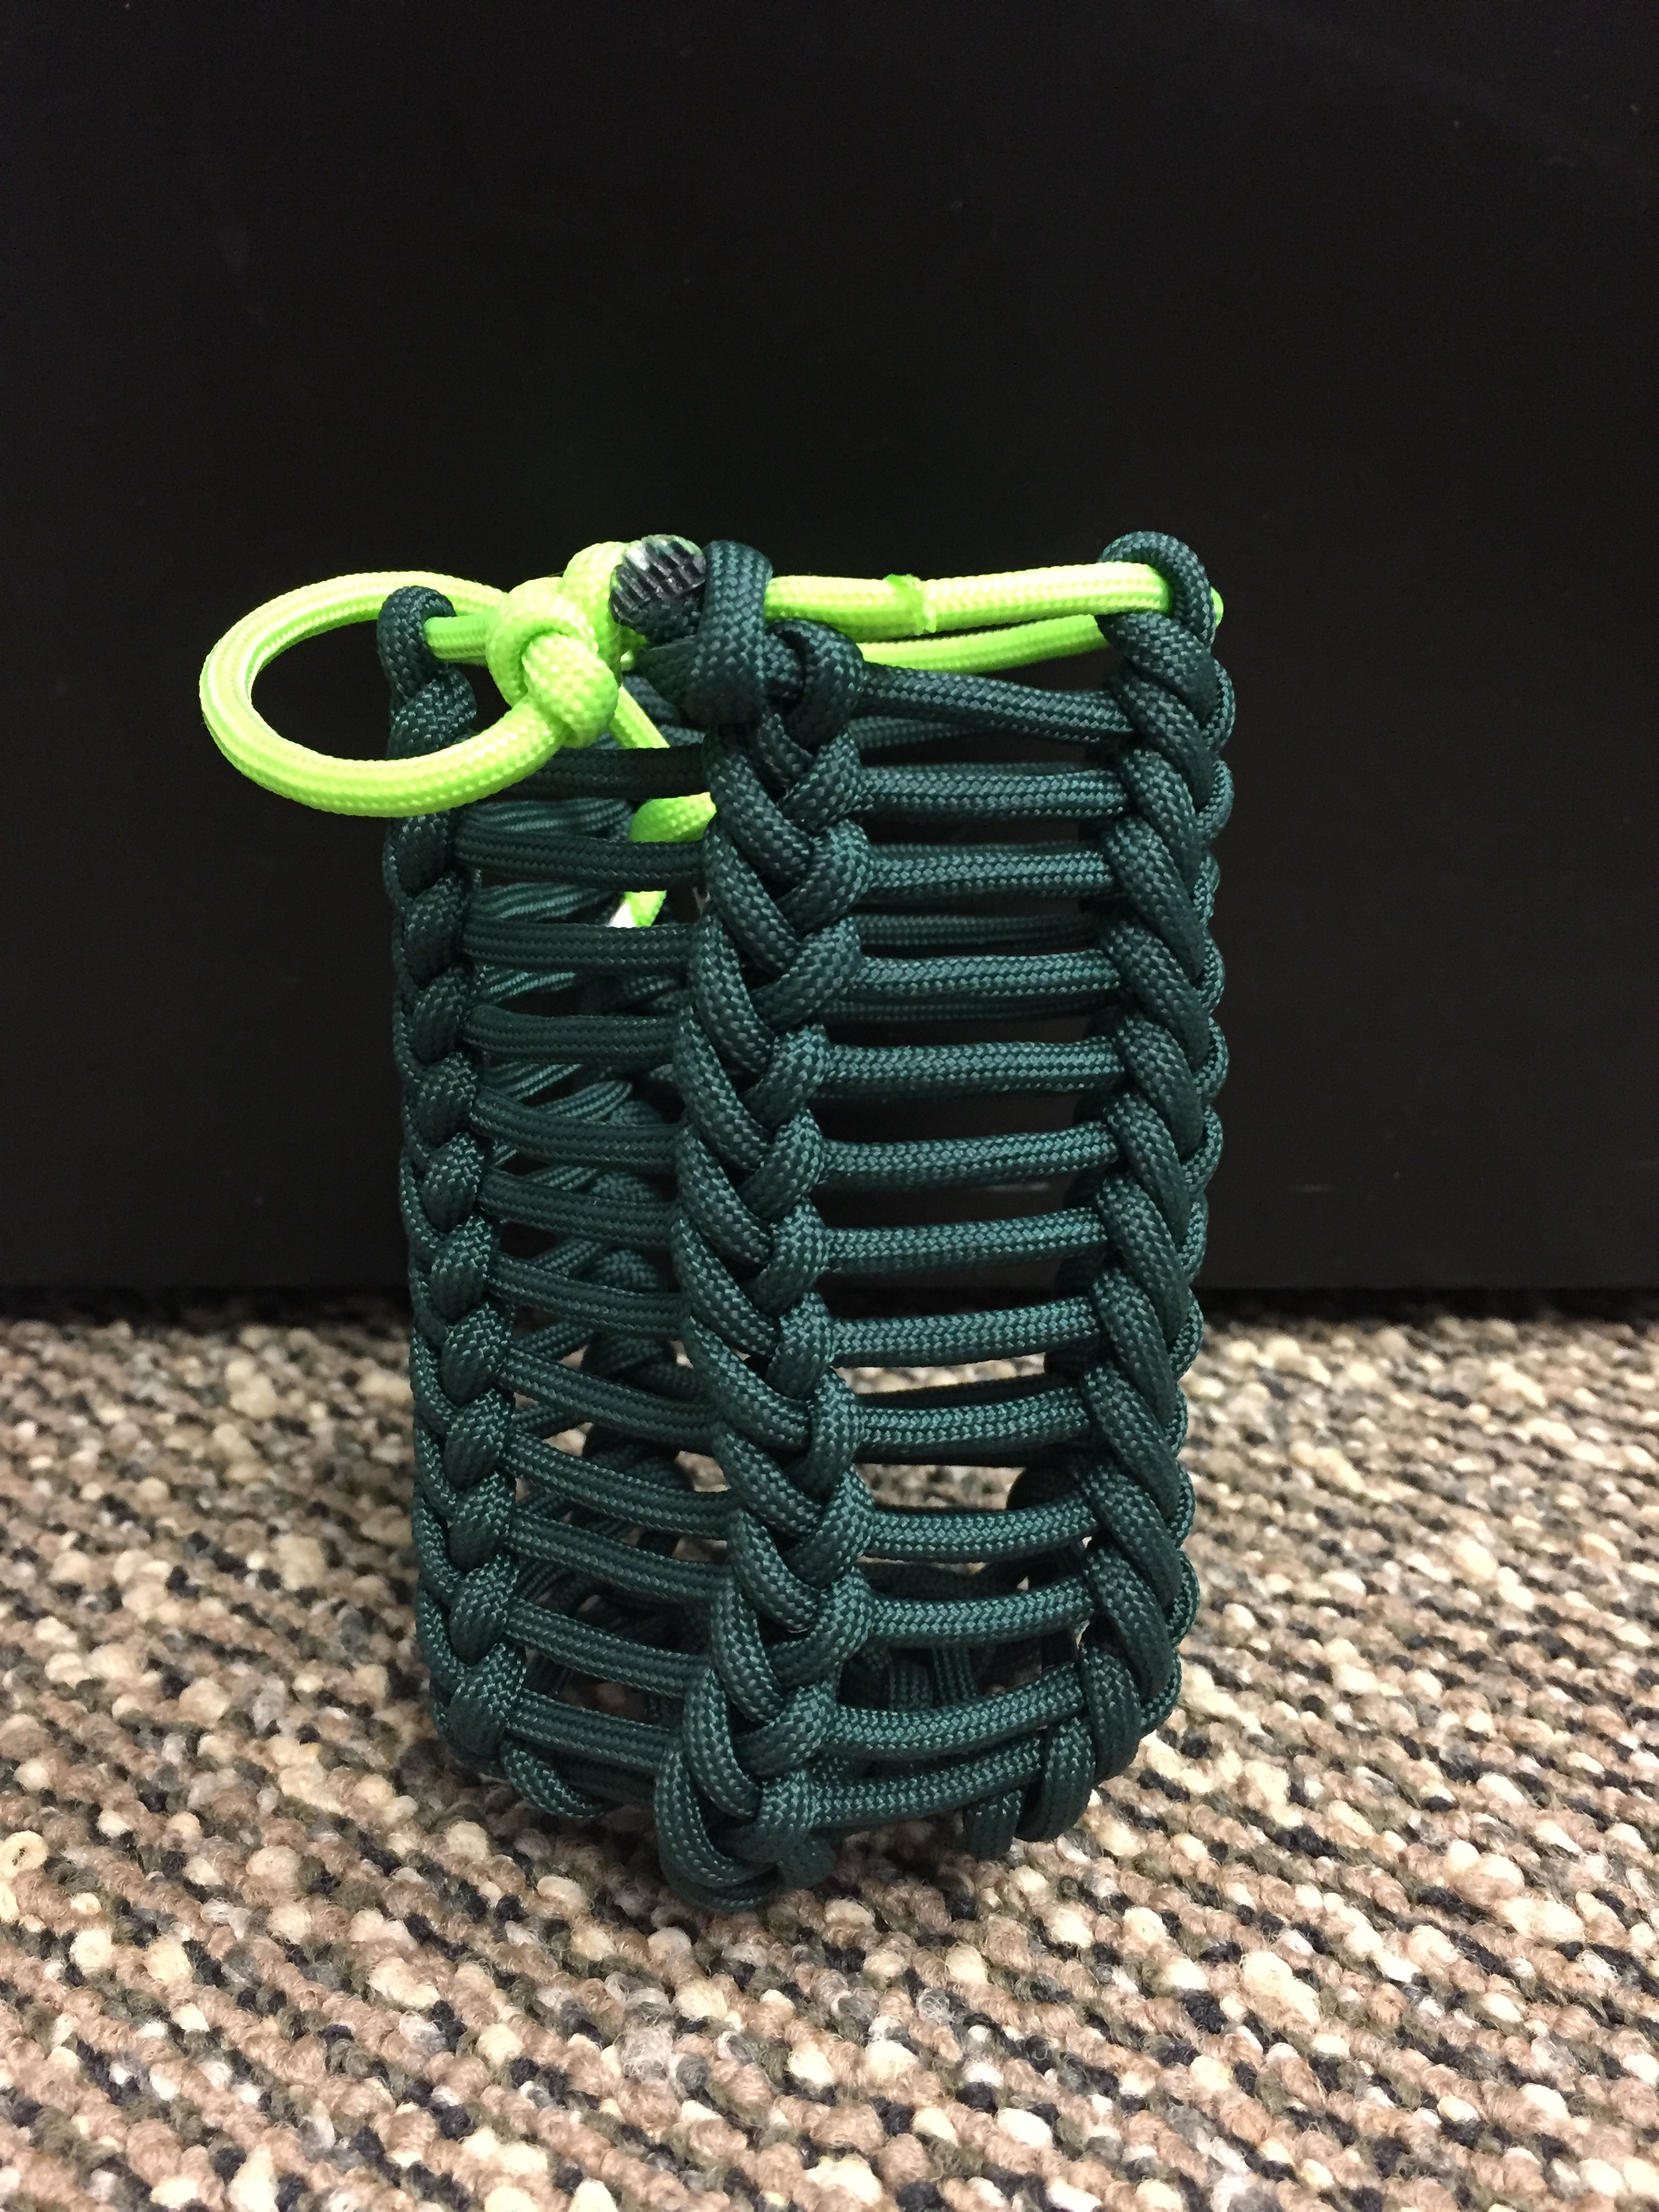 How to make a paracord koozie 1 color wild wolf pack for Paracord koozie how to make